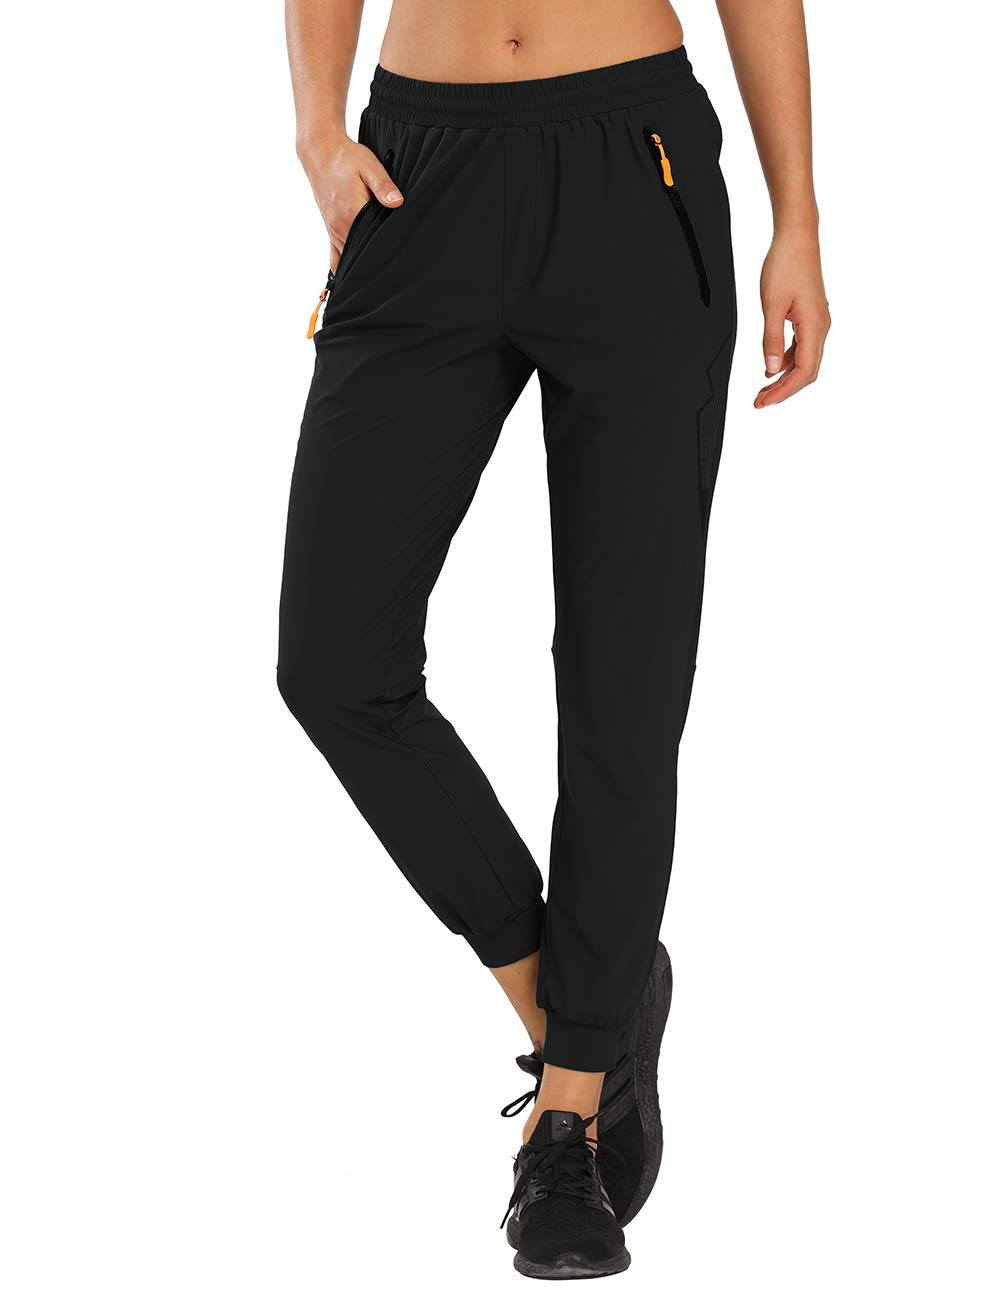 MOCOLY Women's Running Pants Athletic Joggers Sweat Pants Lightweight Hiking Cargo Sports Track Pants Zipper Pockets